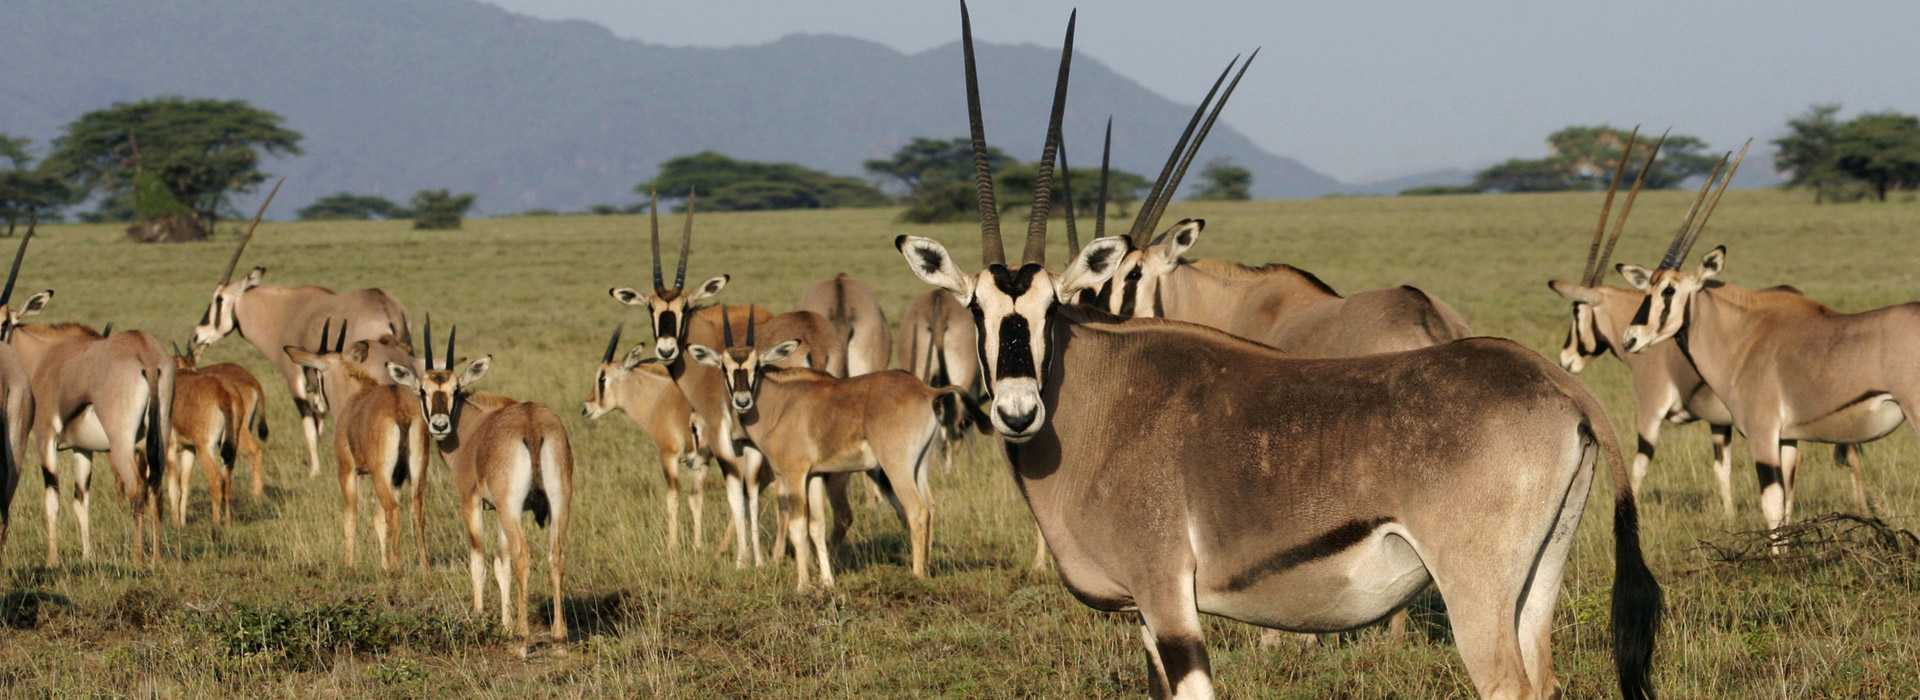 Gemsbok Antelopes In Tarangire